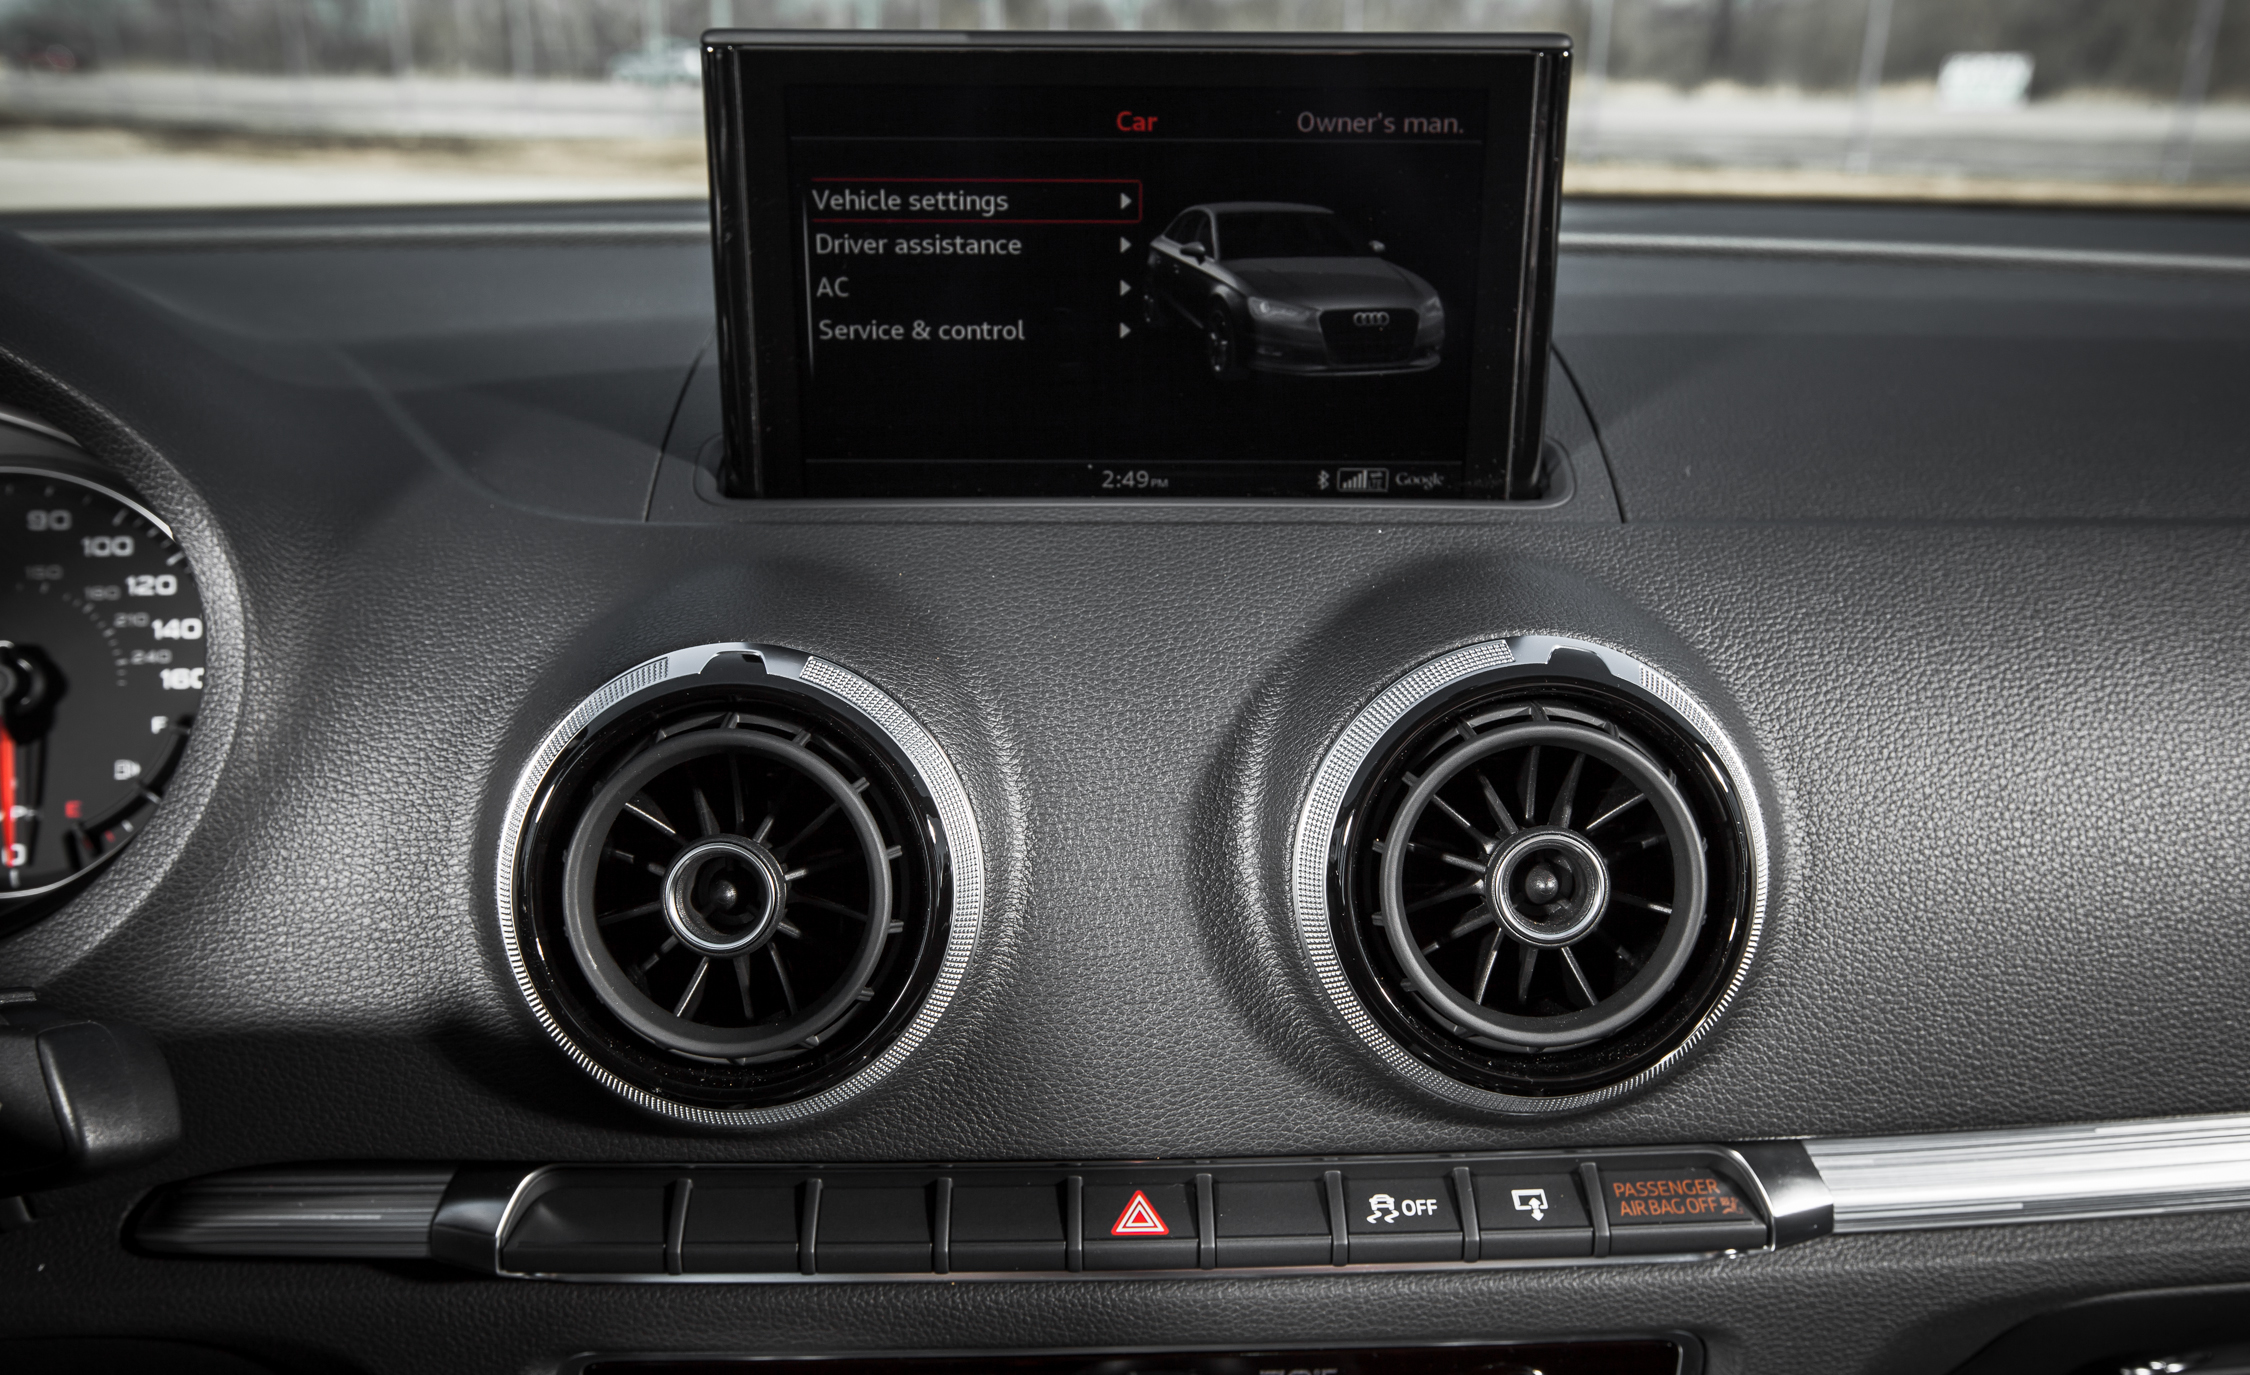 2015 Audi A3 TDI Interior View Headunit Multimedia (Photo 43 of 50)